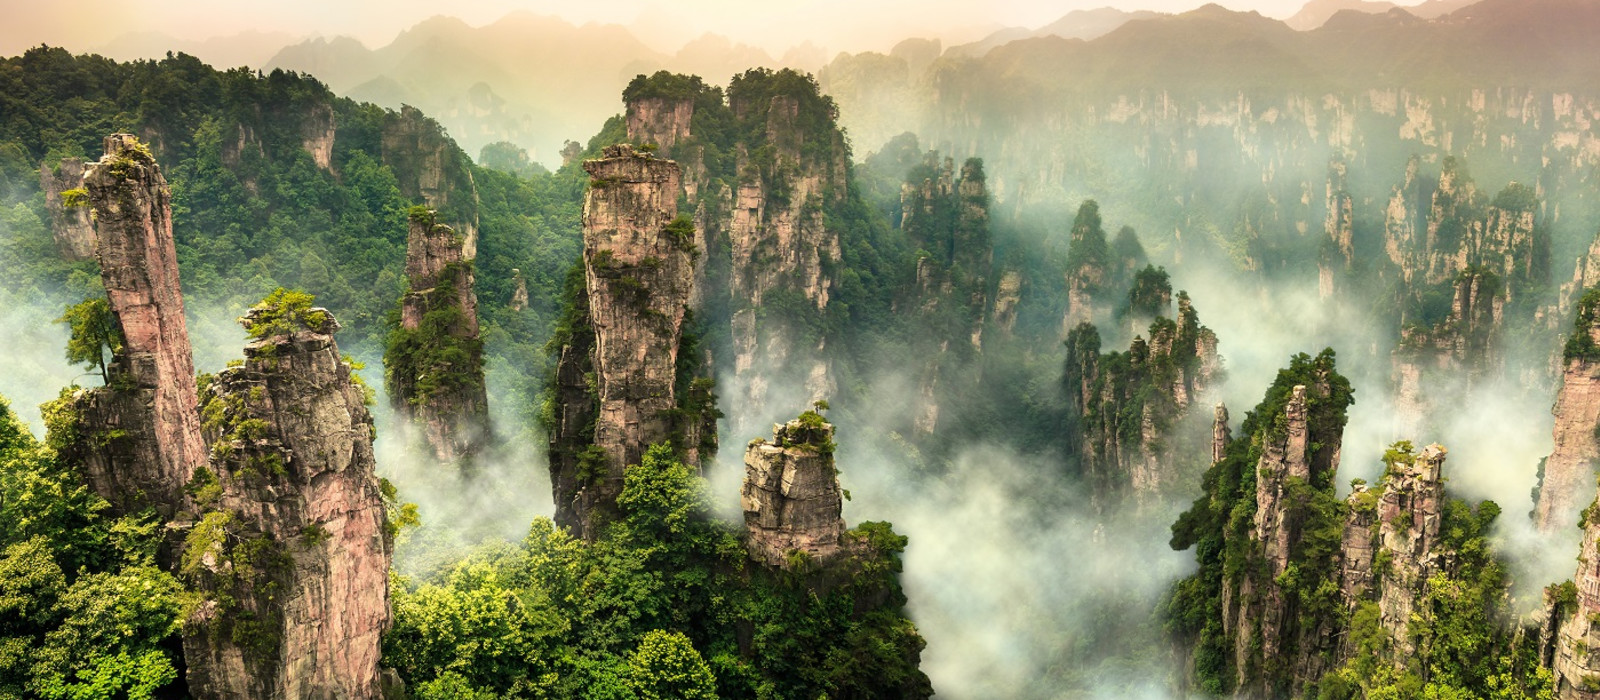 Enchanting Travels China Vacation Zhangjiajie cliff mountain at Wulingyuan Hunan China